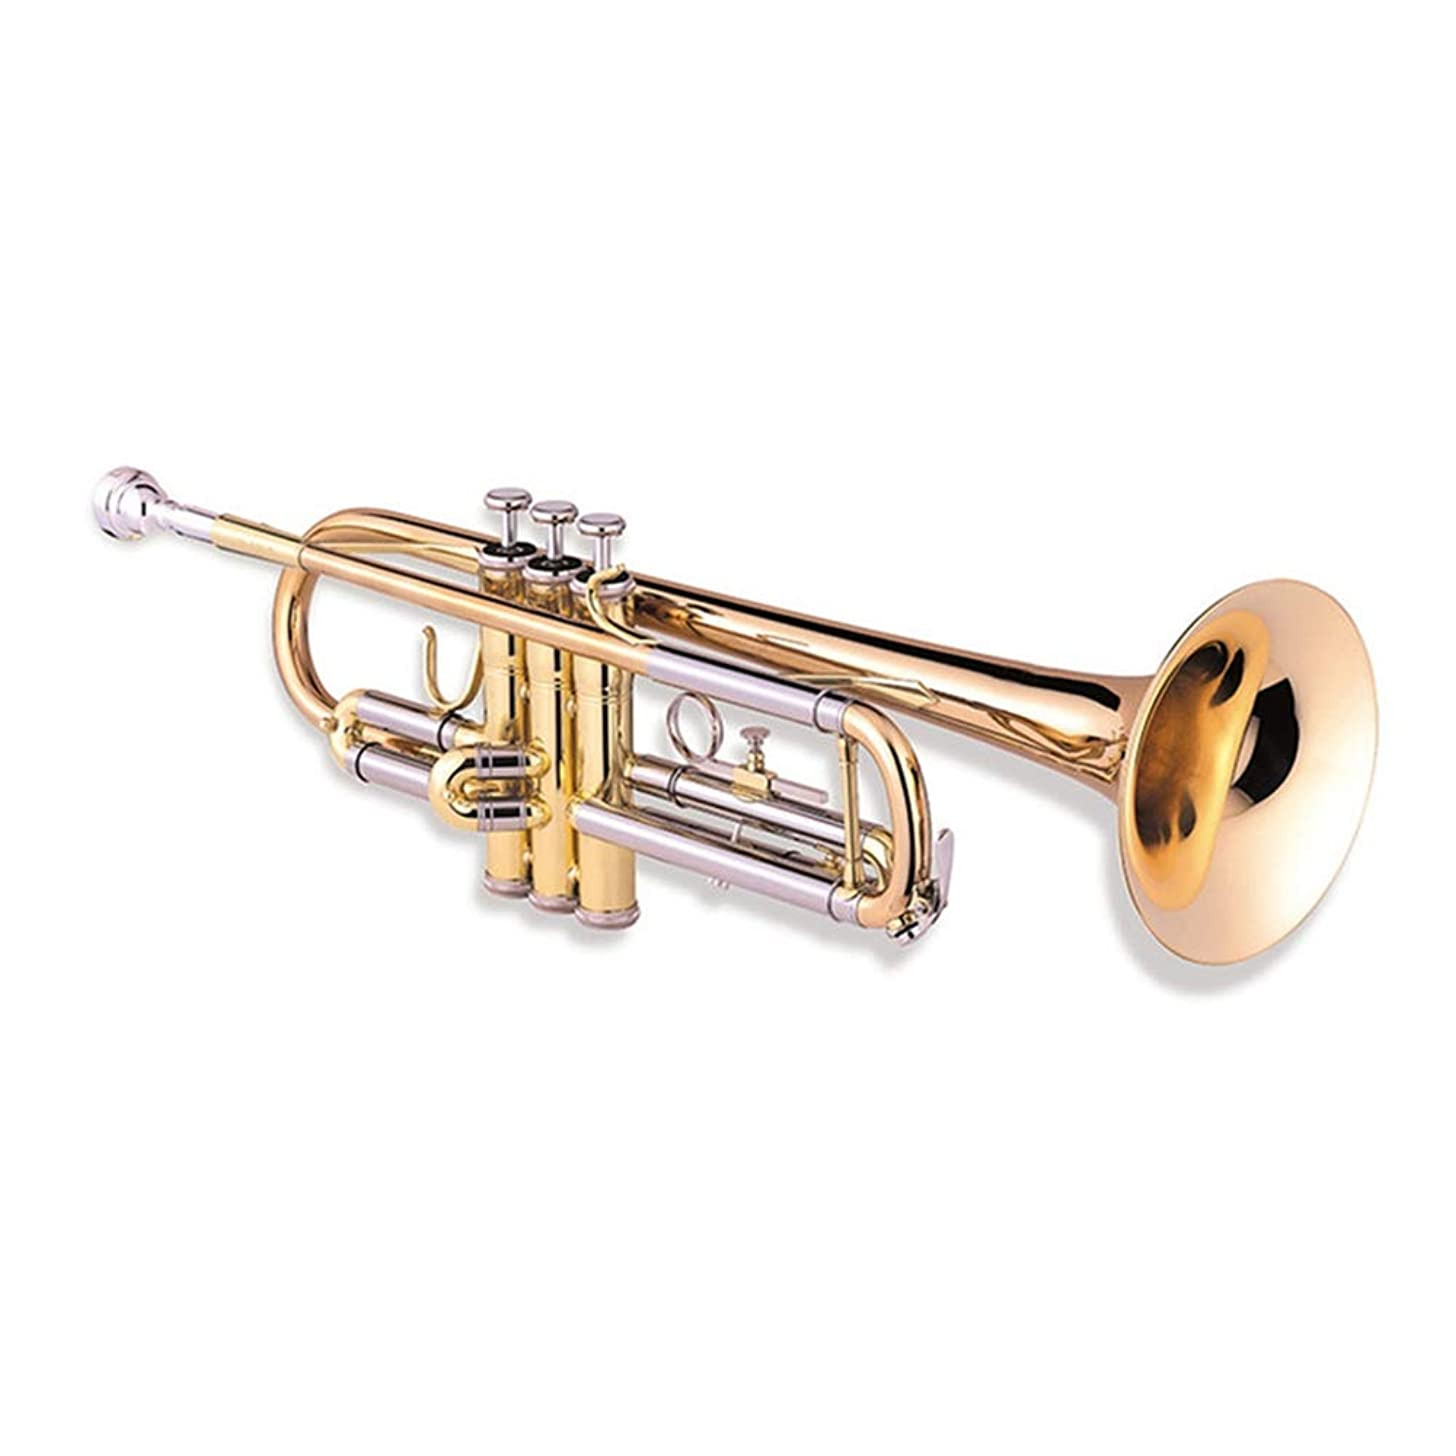 Standard Professional Stainless Steel Wind Instrument Trumpet